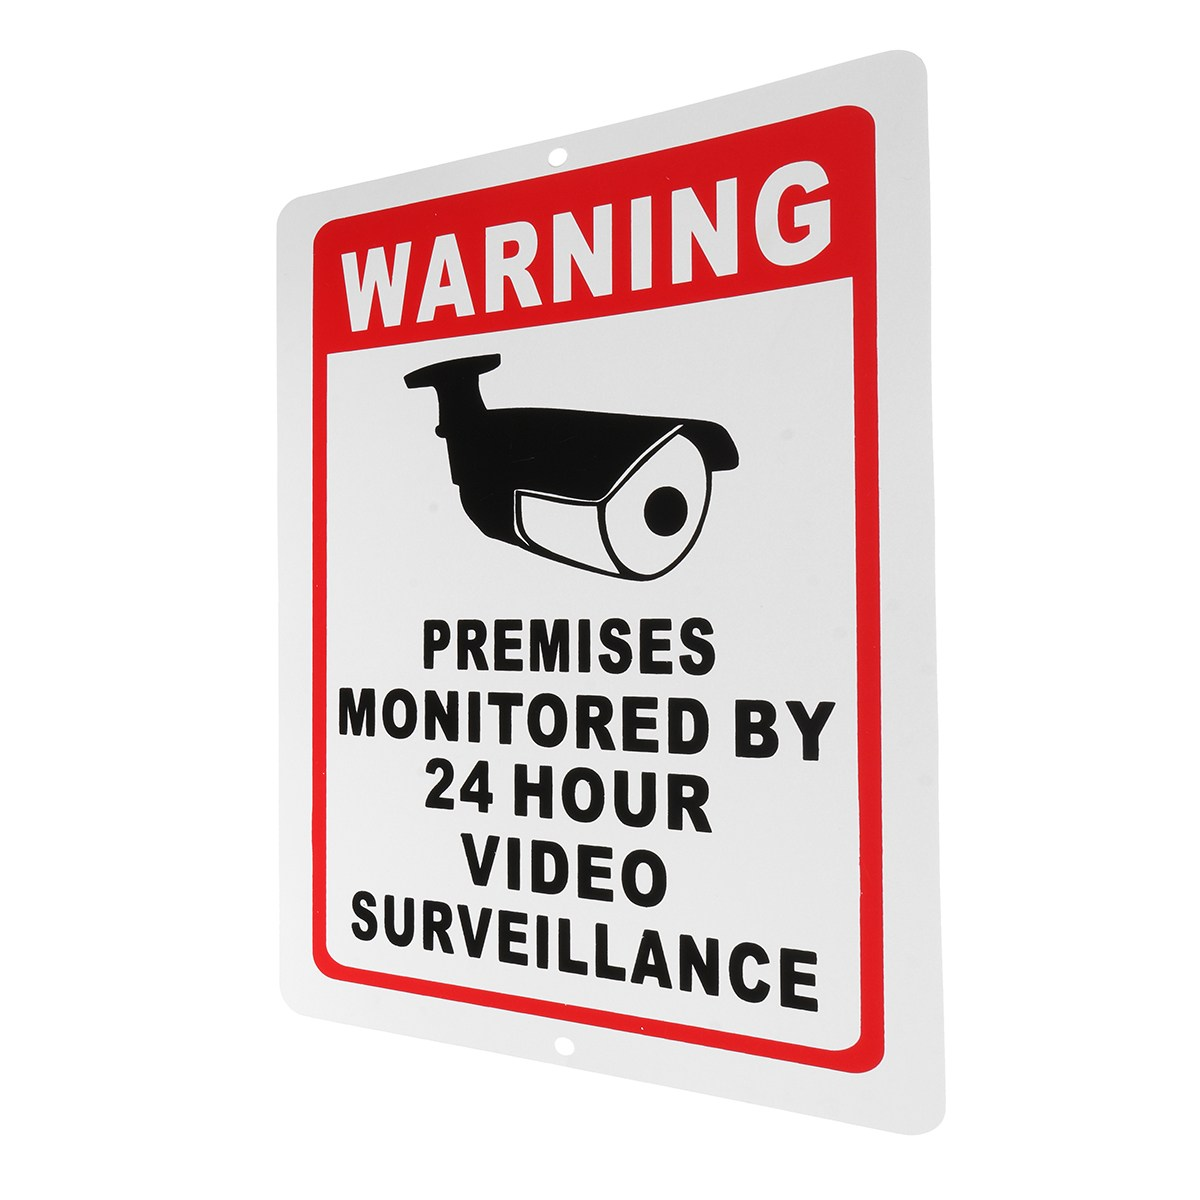 NEW Safurance 18x28cm Home CCTV Surveillance Security Camera Video Sticker Warning Decal Sign Home Safety new safurance 10pcs lot waterproof sunscreen pvc home cctv video surveillance security camera alarm sticker warning decal signs